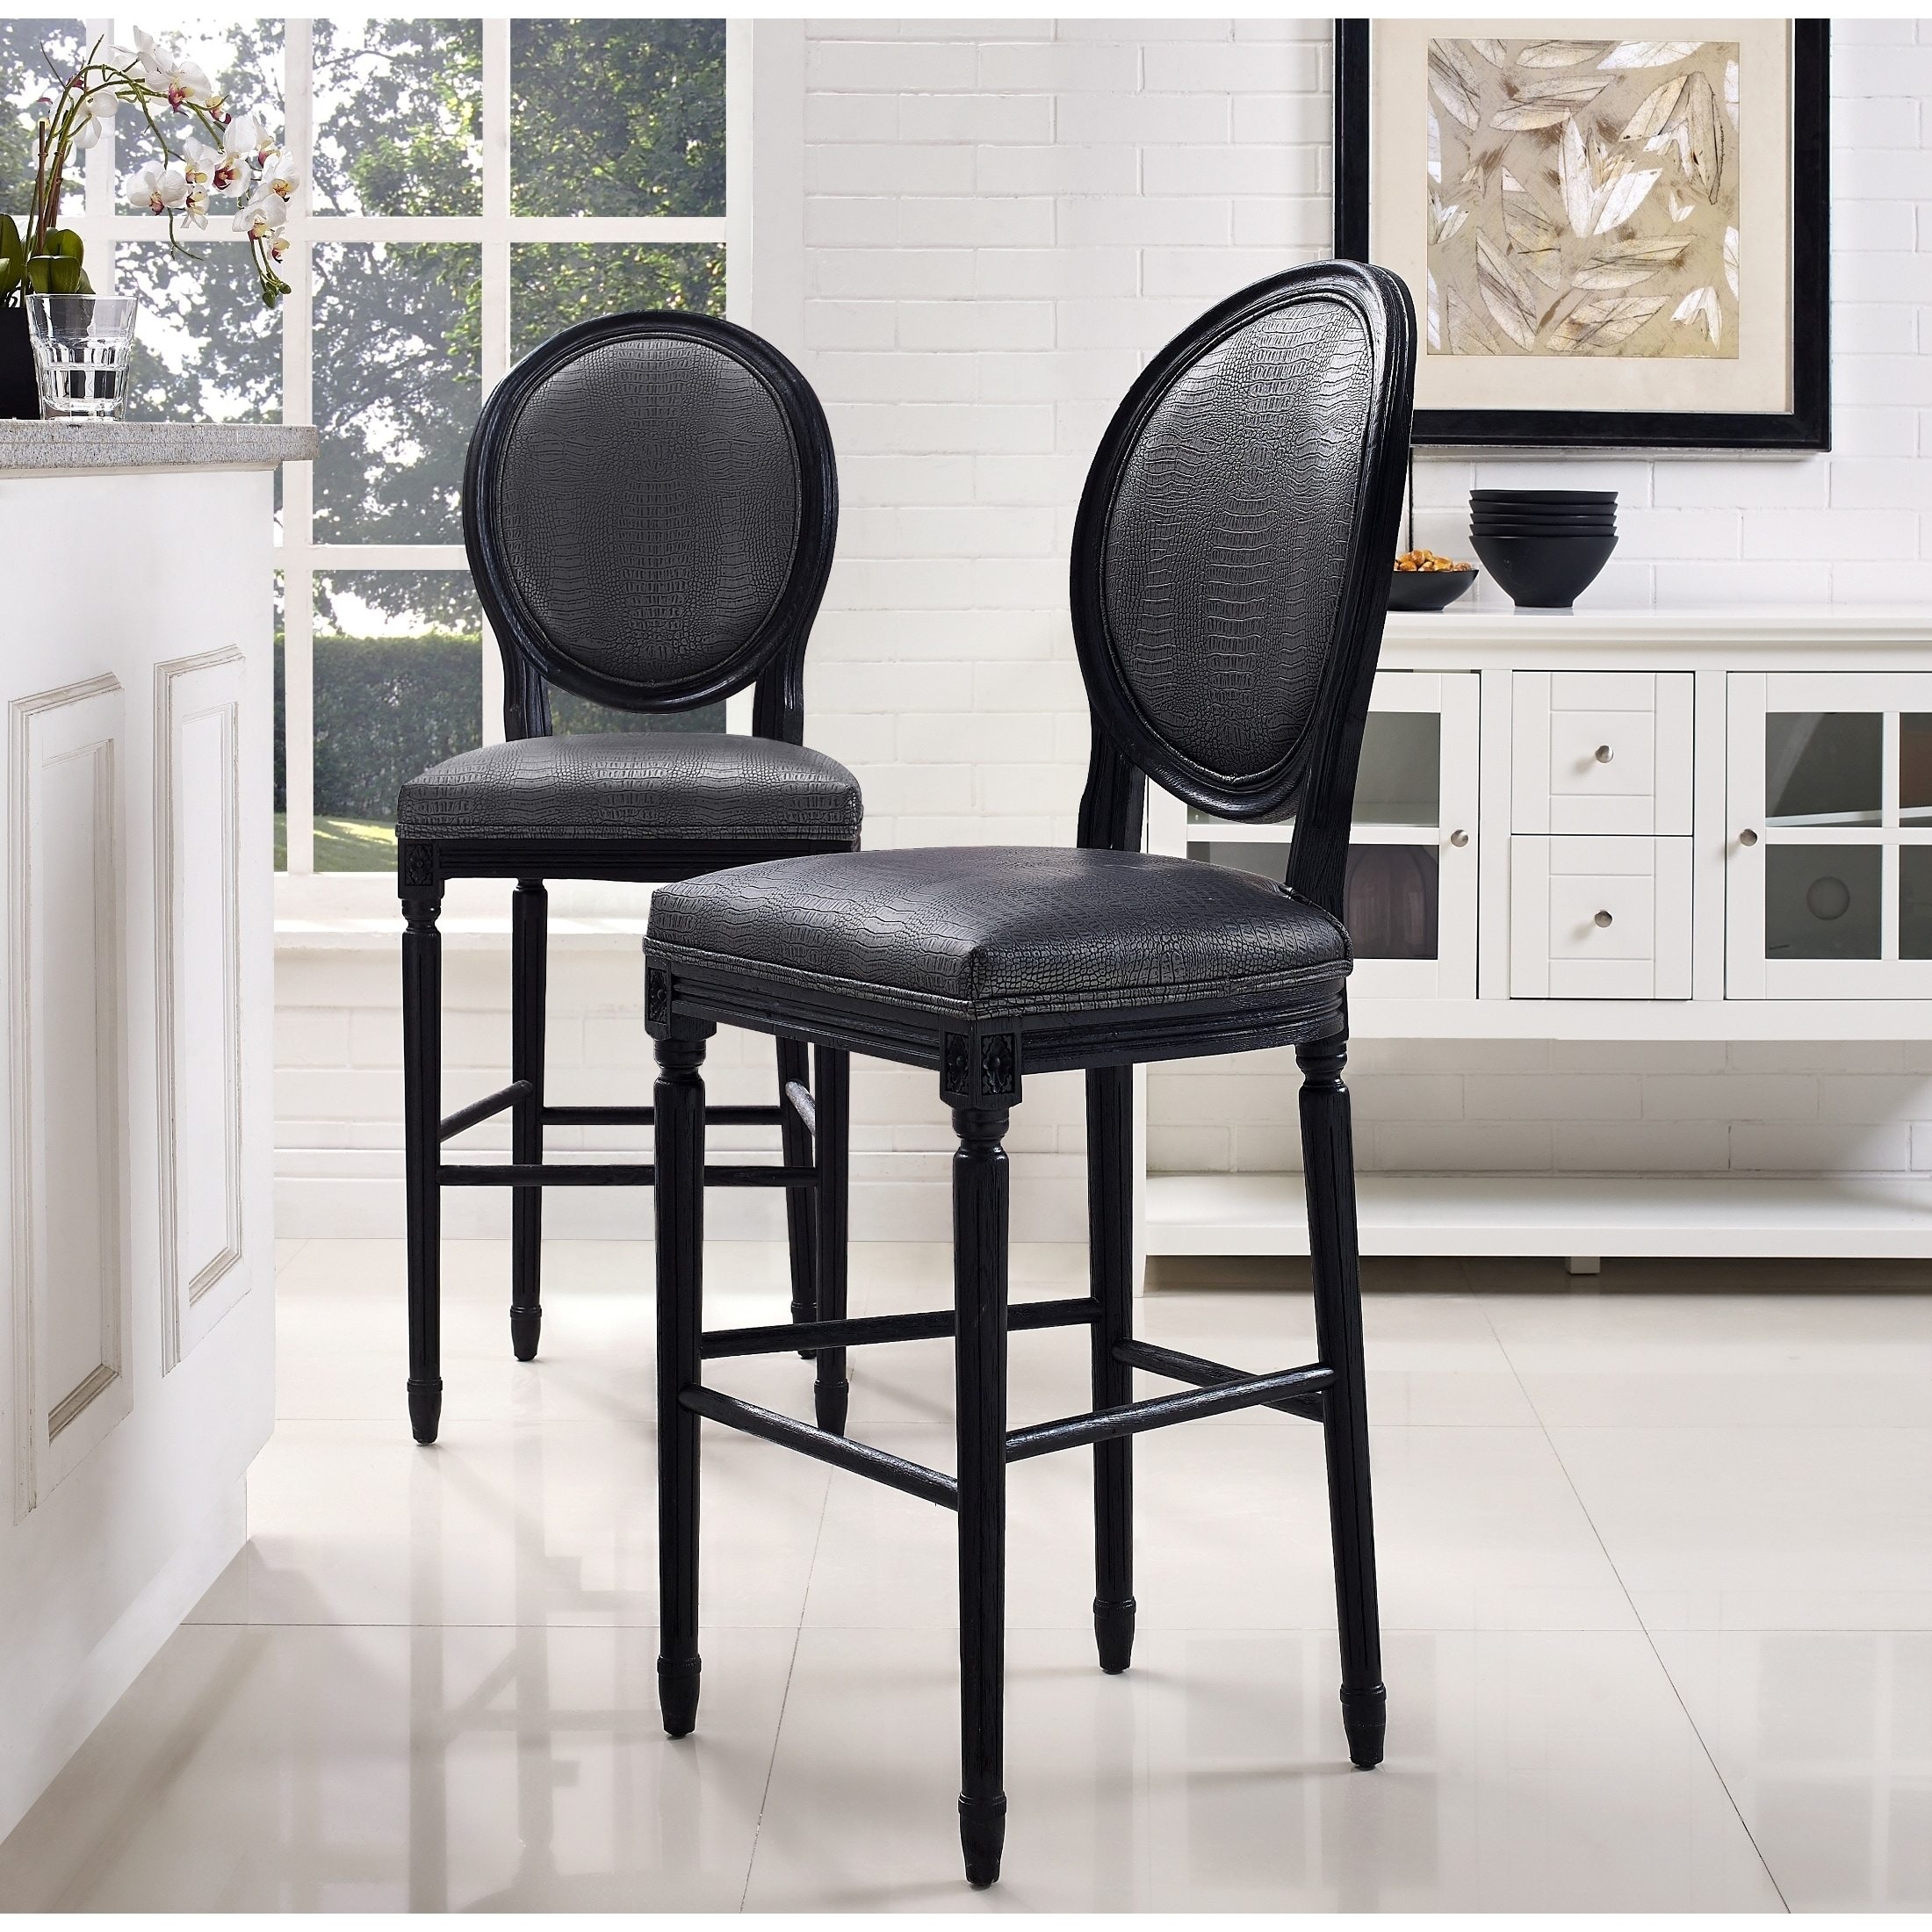 Good Philip Grey Croc Barstool   Free Shipping Today   Overstock.com   17444108 Images